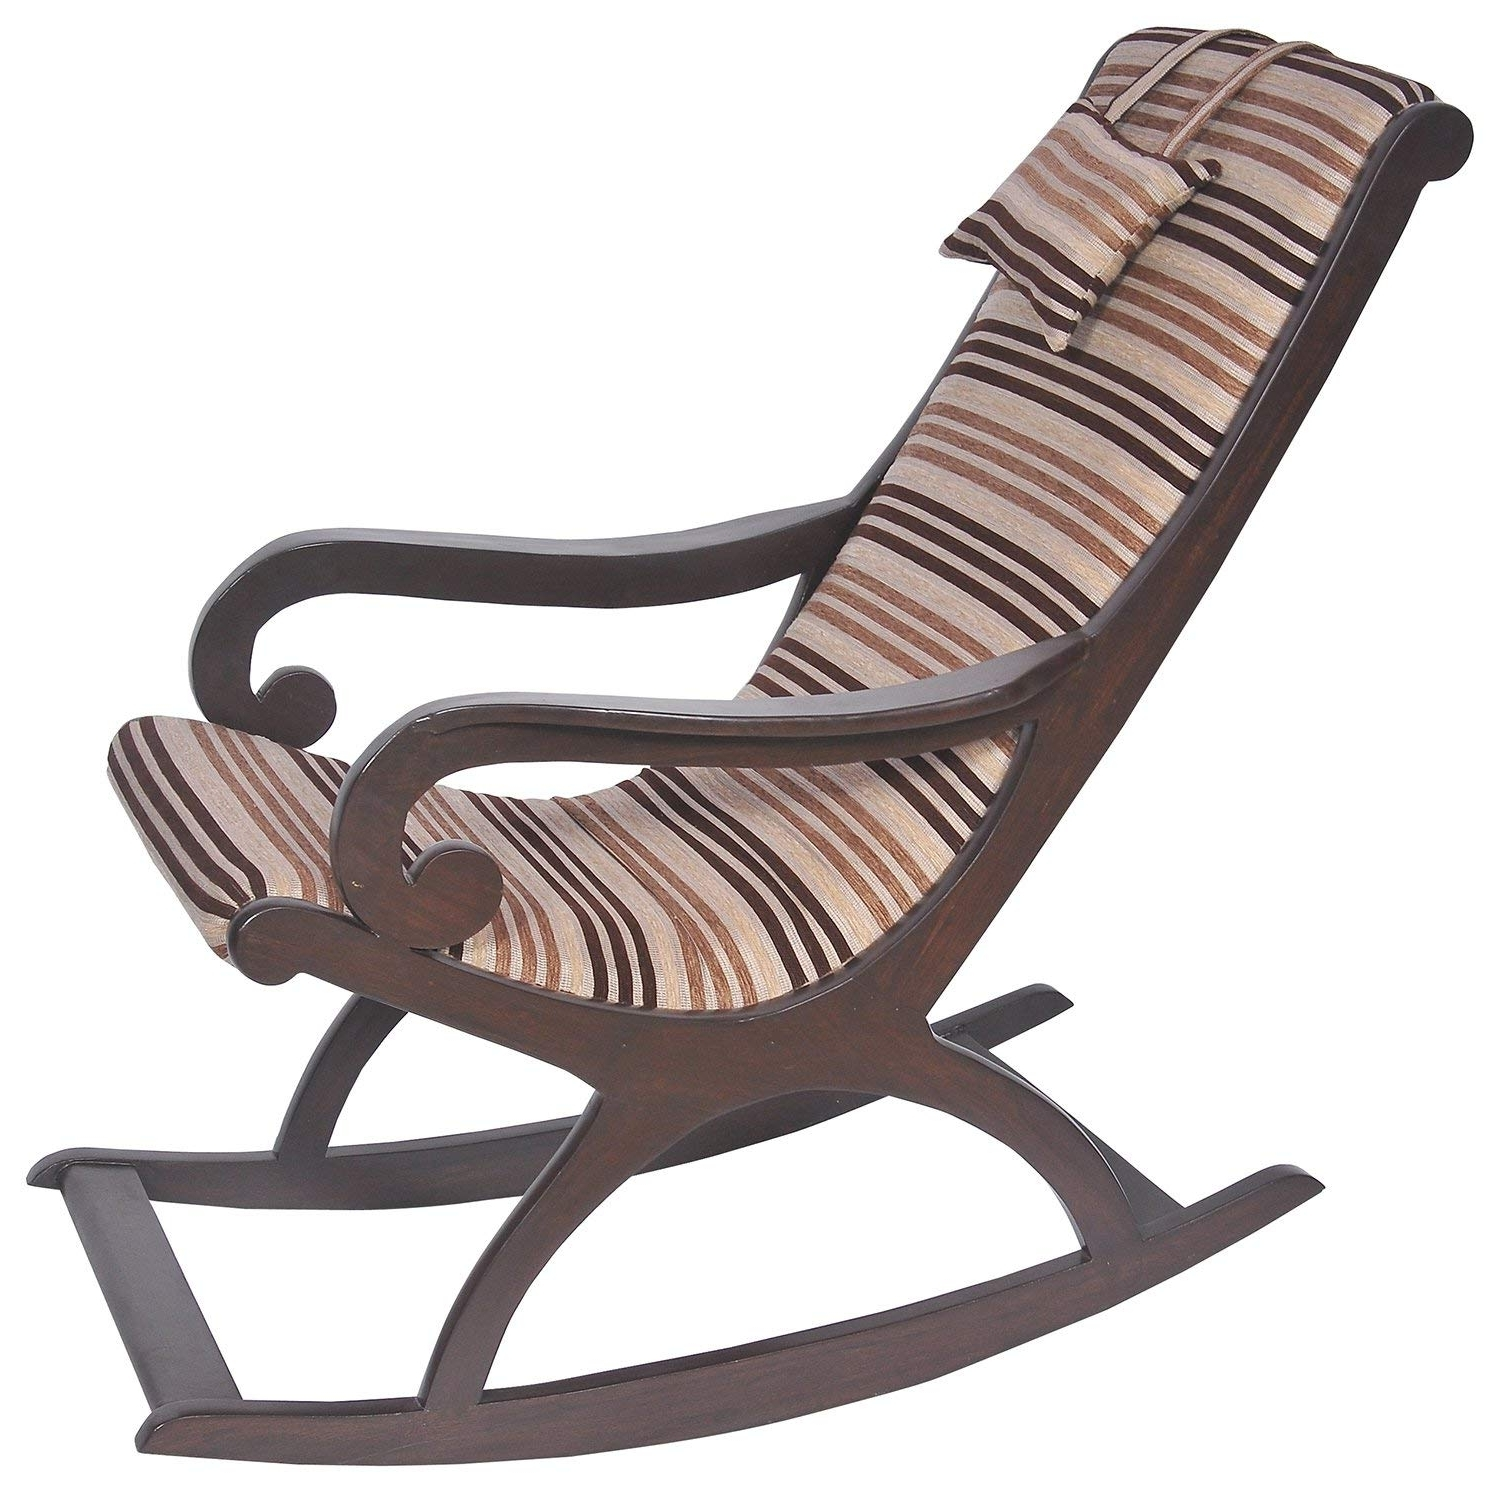 Widely Used Rocking Chairs Pertaining To Pansy Rocking Chair (Brown): Amazon (View 4 of 15)